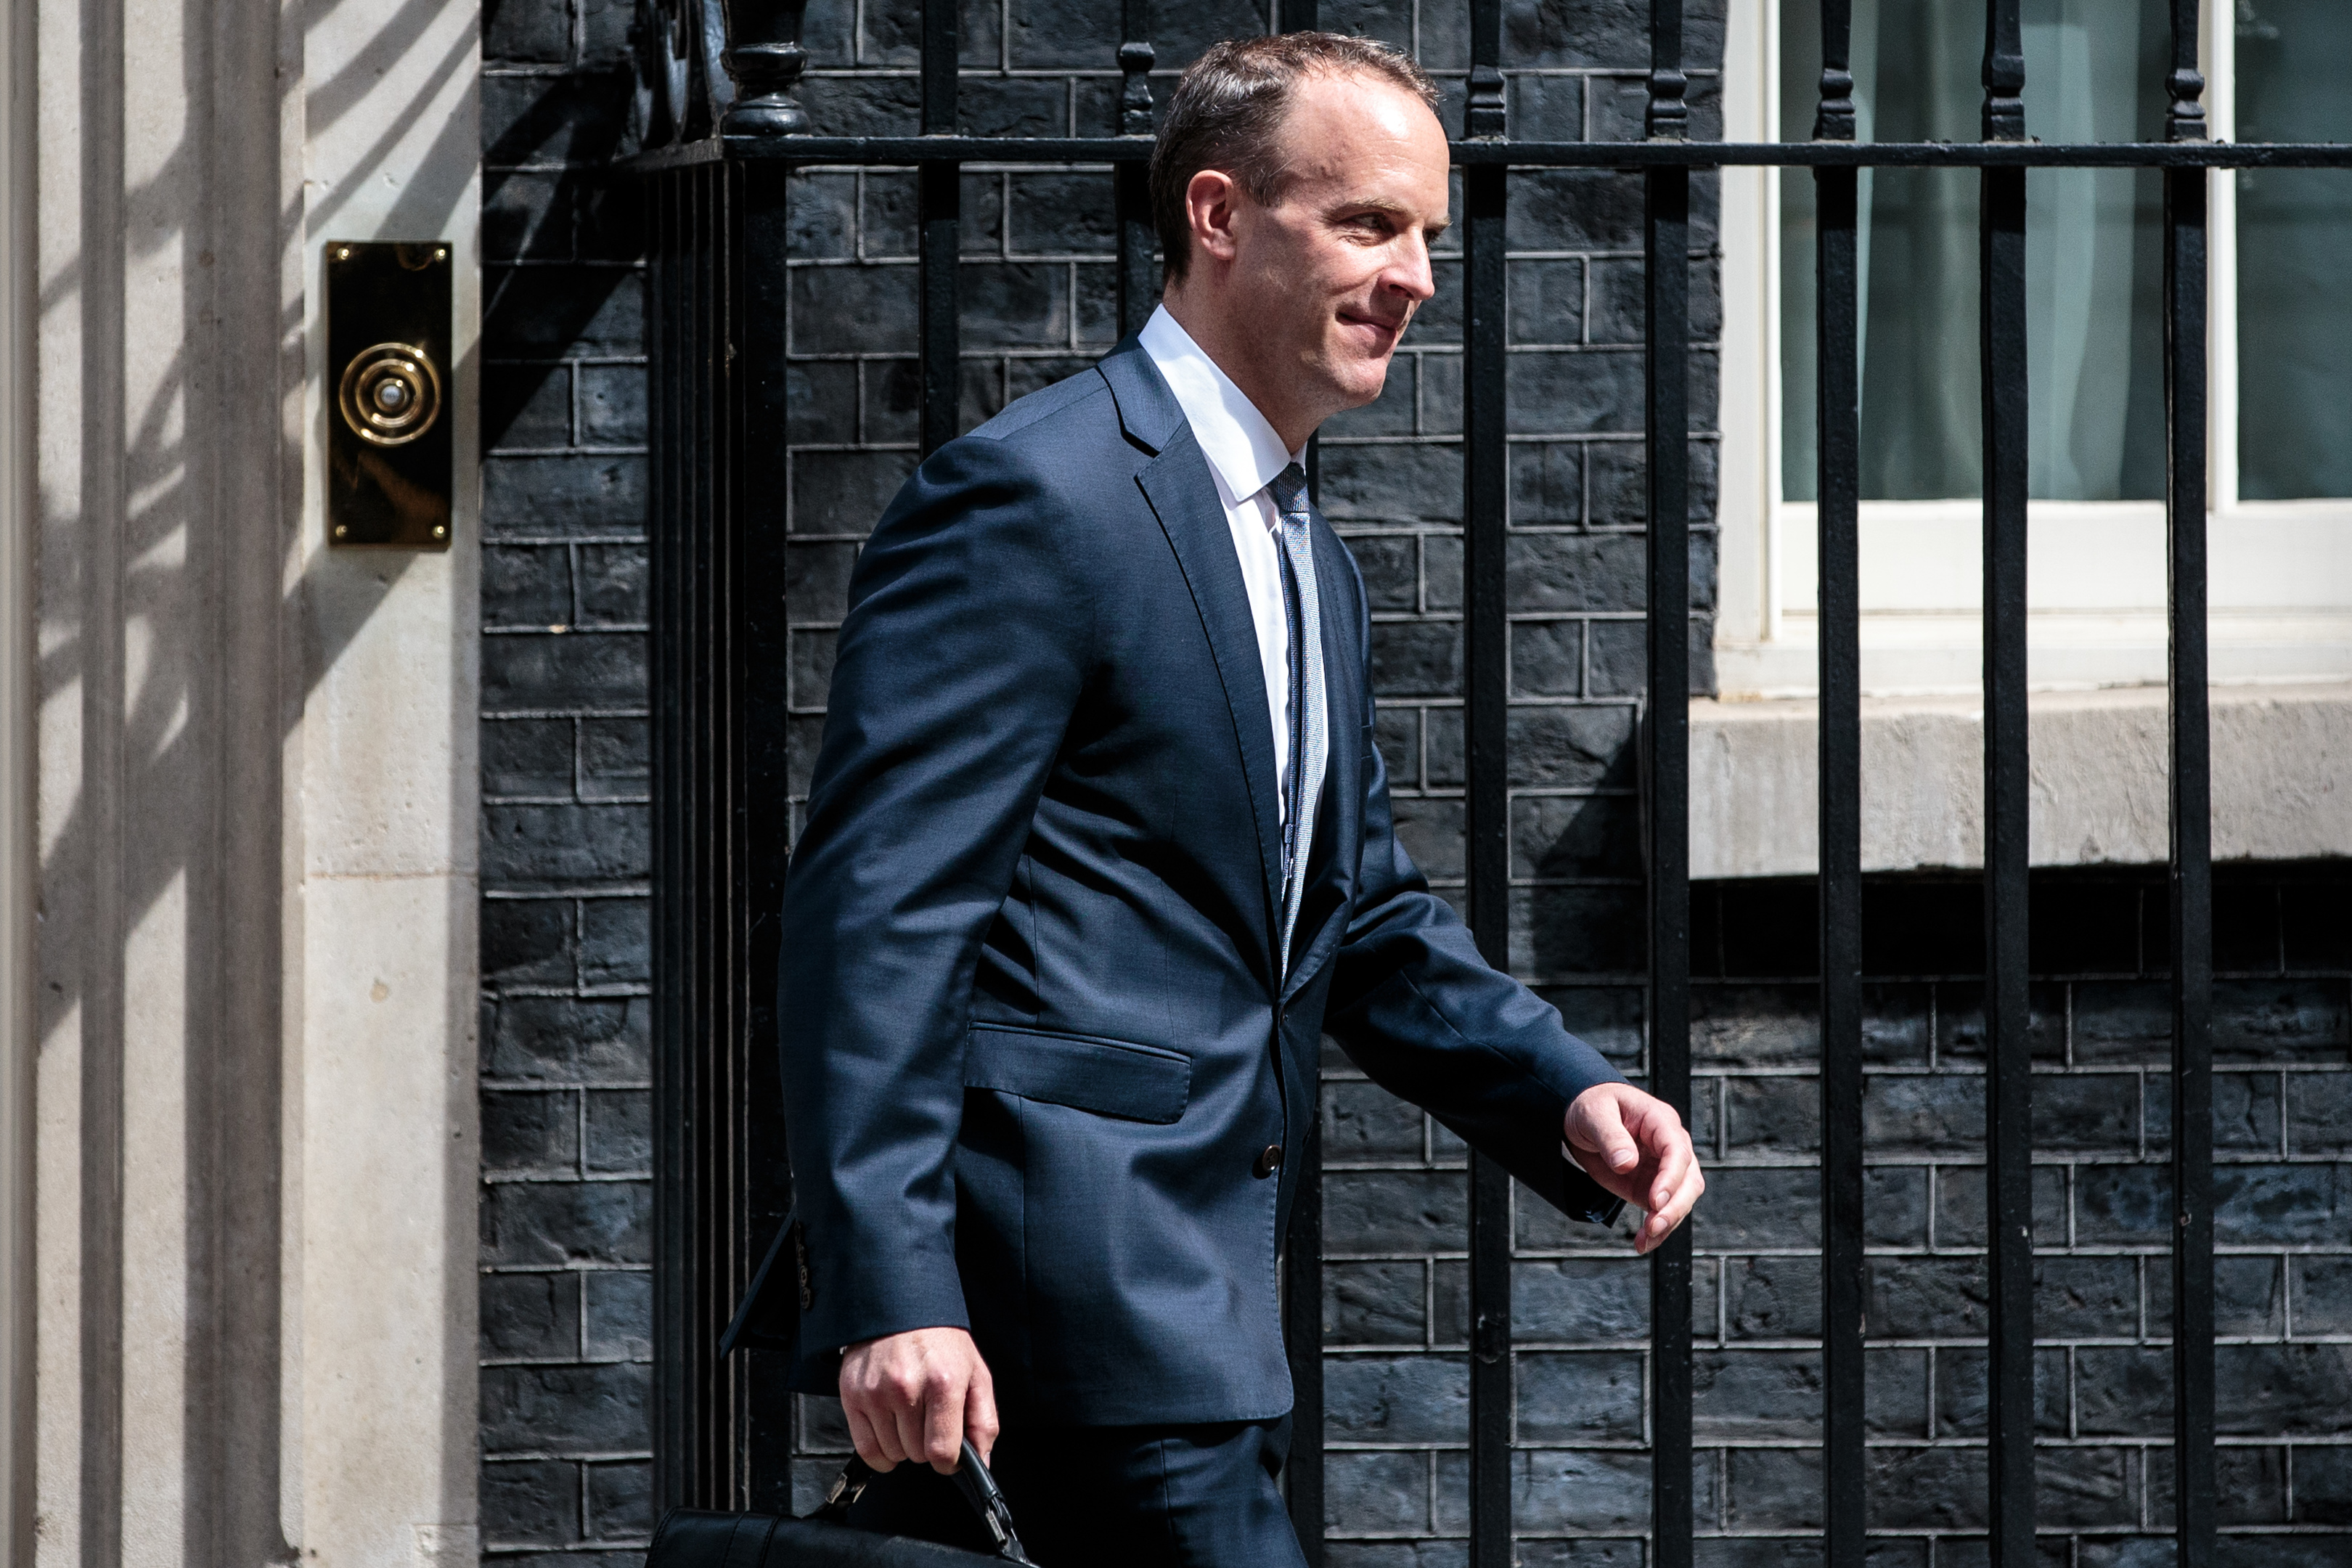 LONDON, ENGLAND - JULY 09: Dominic Raab leaves Number 10 Downing Street after being appointed Brexit Secretary by British Prime Minster Theresa May on July 9, 2018 in London, England. Last night David Davis quit as Brexit Secretary over his opposition to Mrs May's plan for the UK's future relations with the EU. (Photo by Jack Taylor/Getty Images)